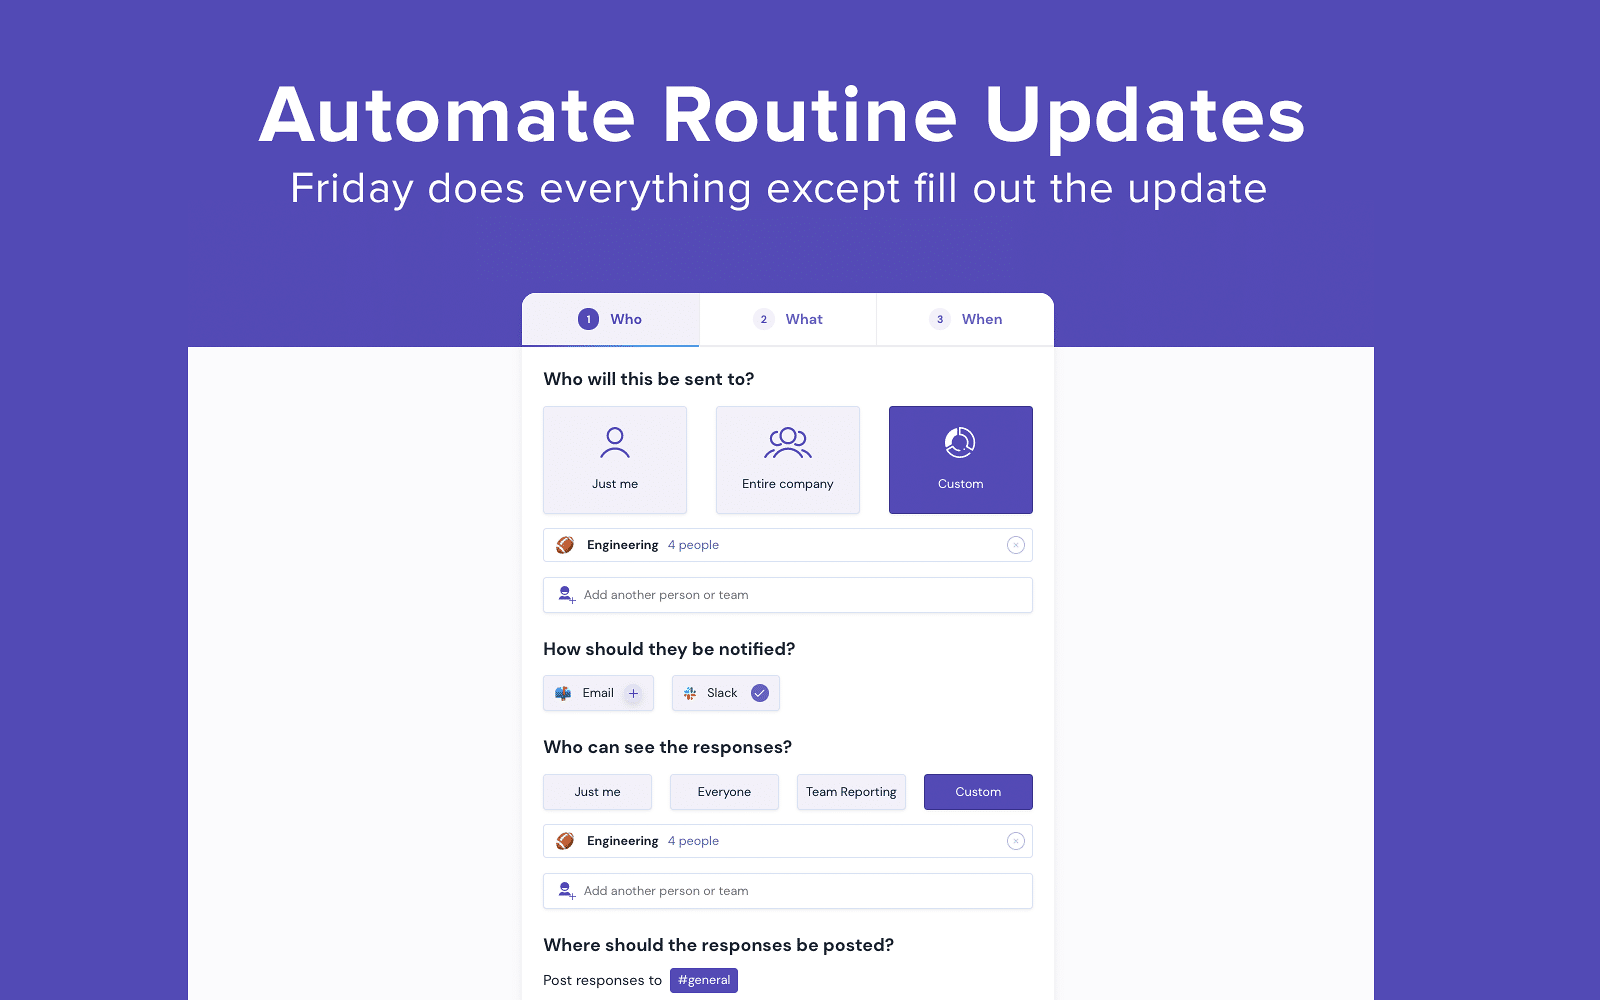 Friday: Automate Routine Updates (Friday does everything except fill out the update)